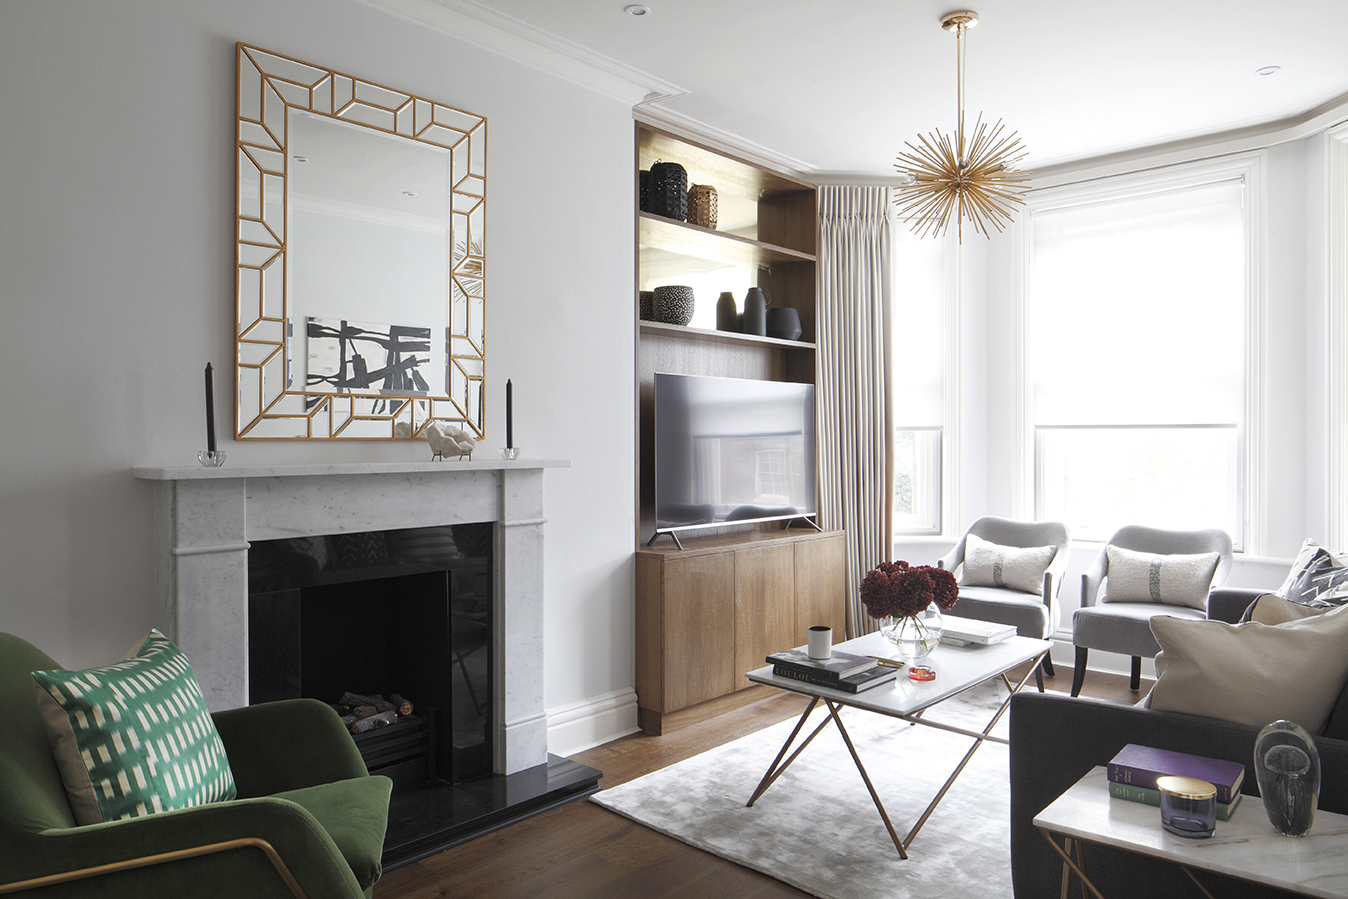 NW1- Living room-Displaying the fireplace and tv joinery -LO.jpg